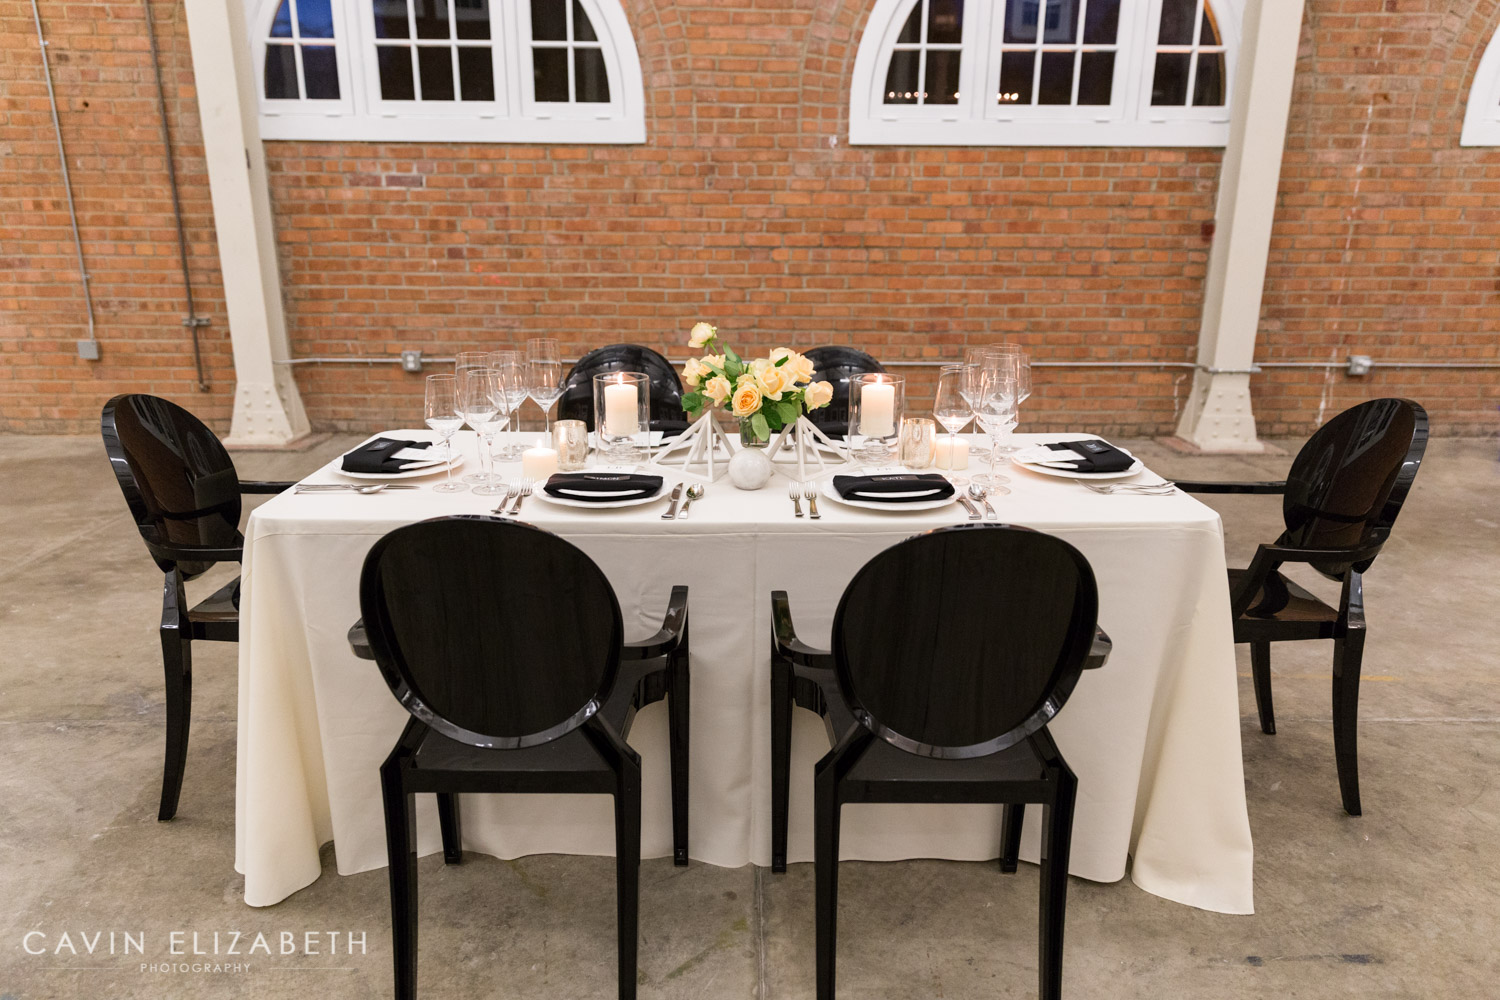 Chic wedding inspiration at brick w cavin elizabeth for Black and white reception tables